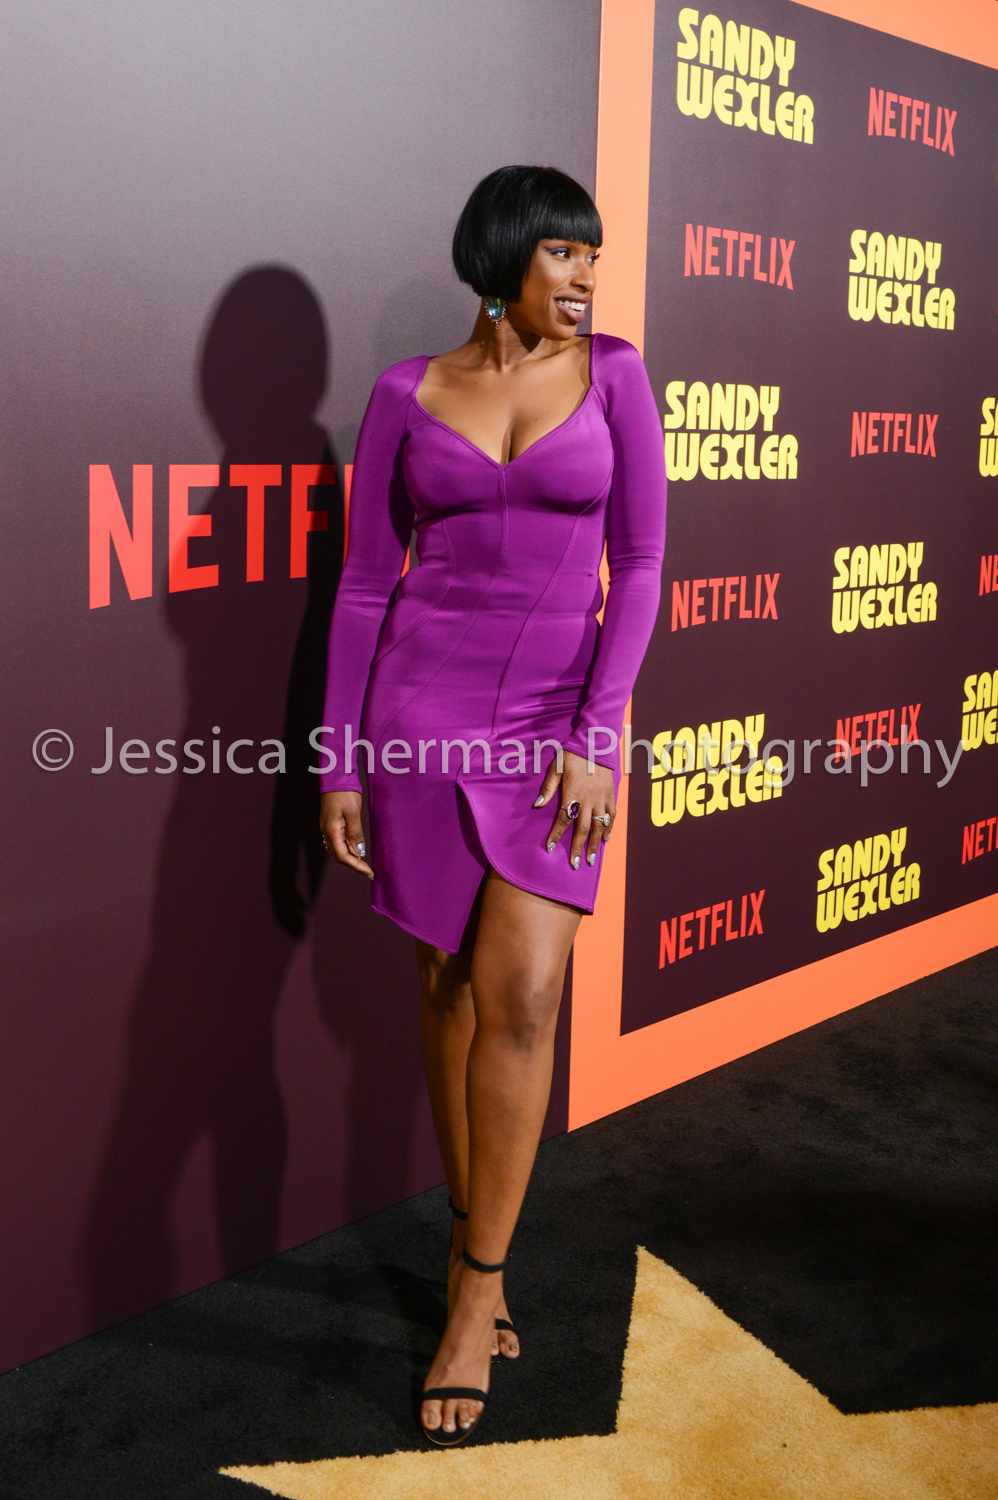 Jennifer_Hudson_Jessica_Sherman (1 of 1)-2.jpg